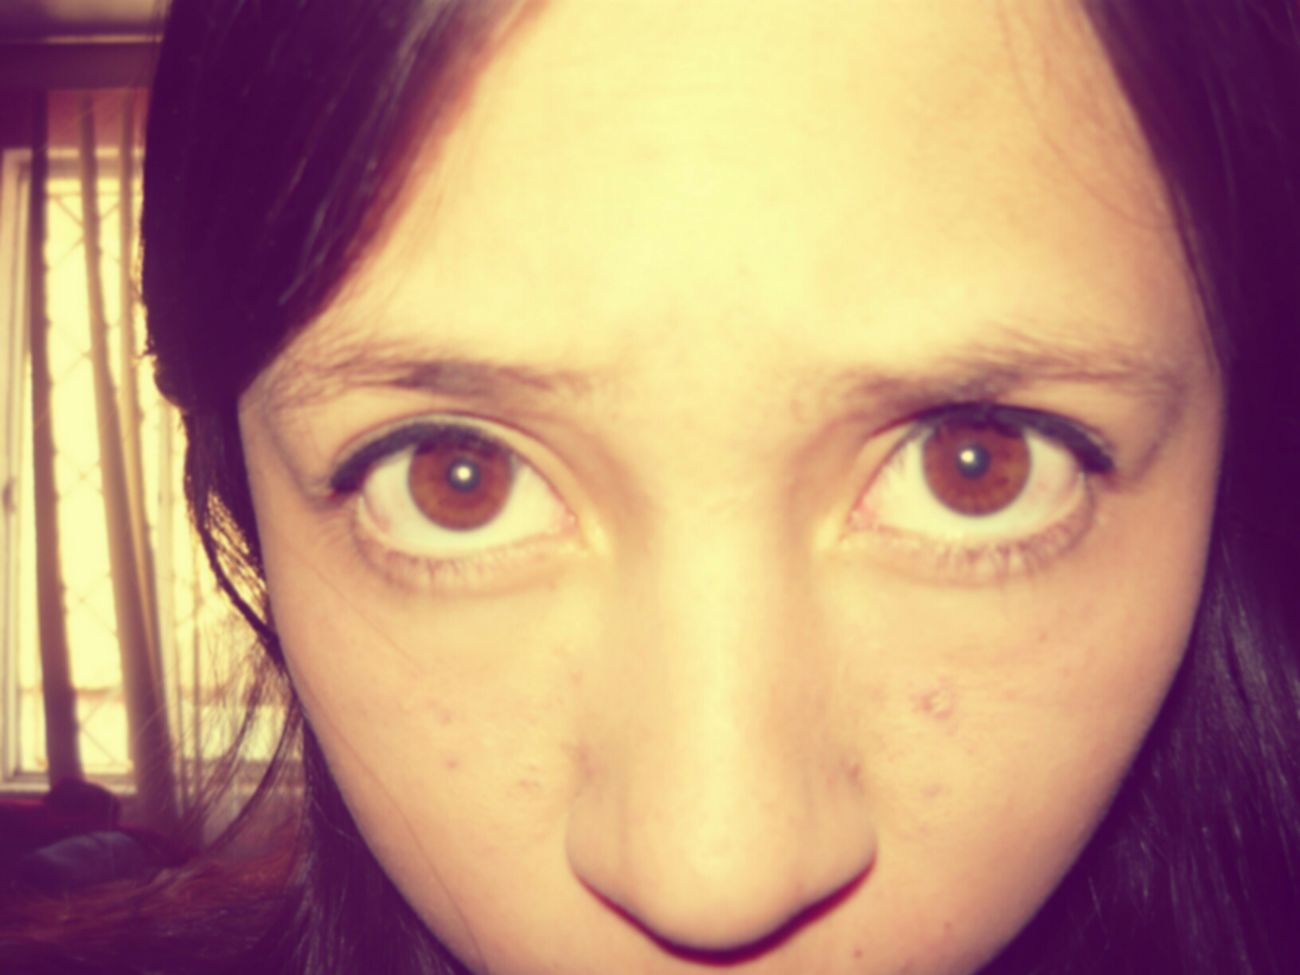 #beautiful #eyes #big #brown #<3